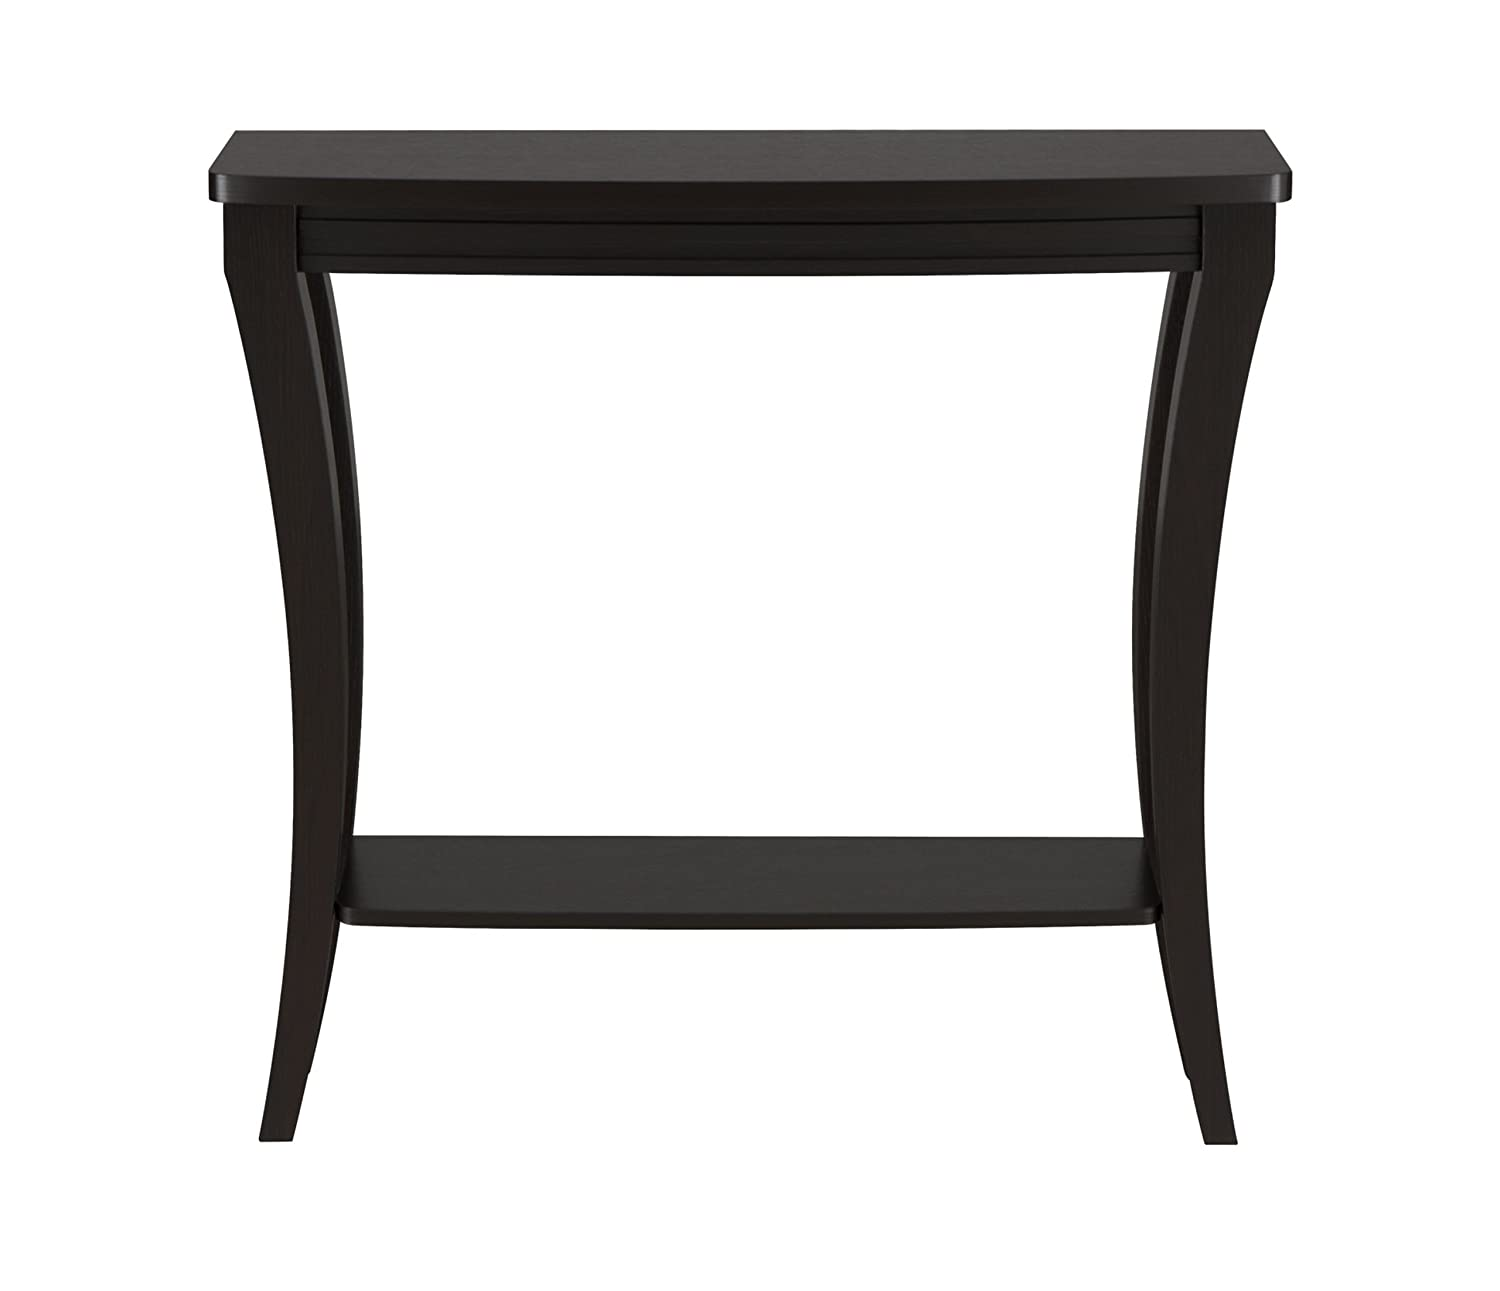 ioHOMES Danita Graceful Console Table, Cappuccino